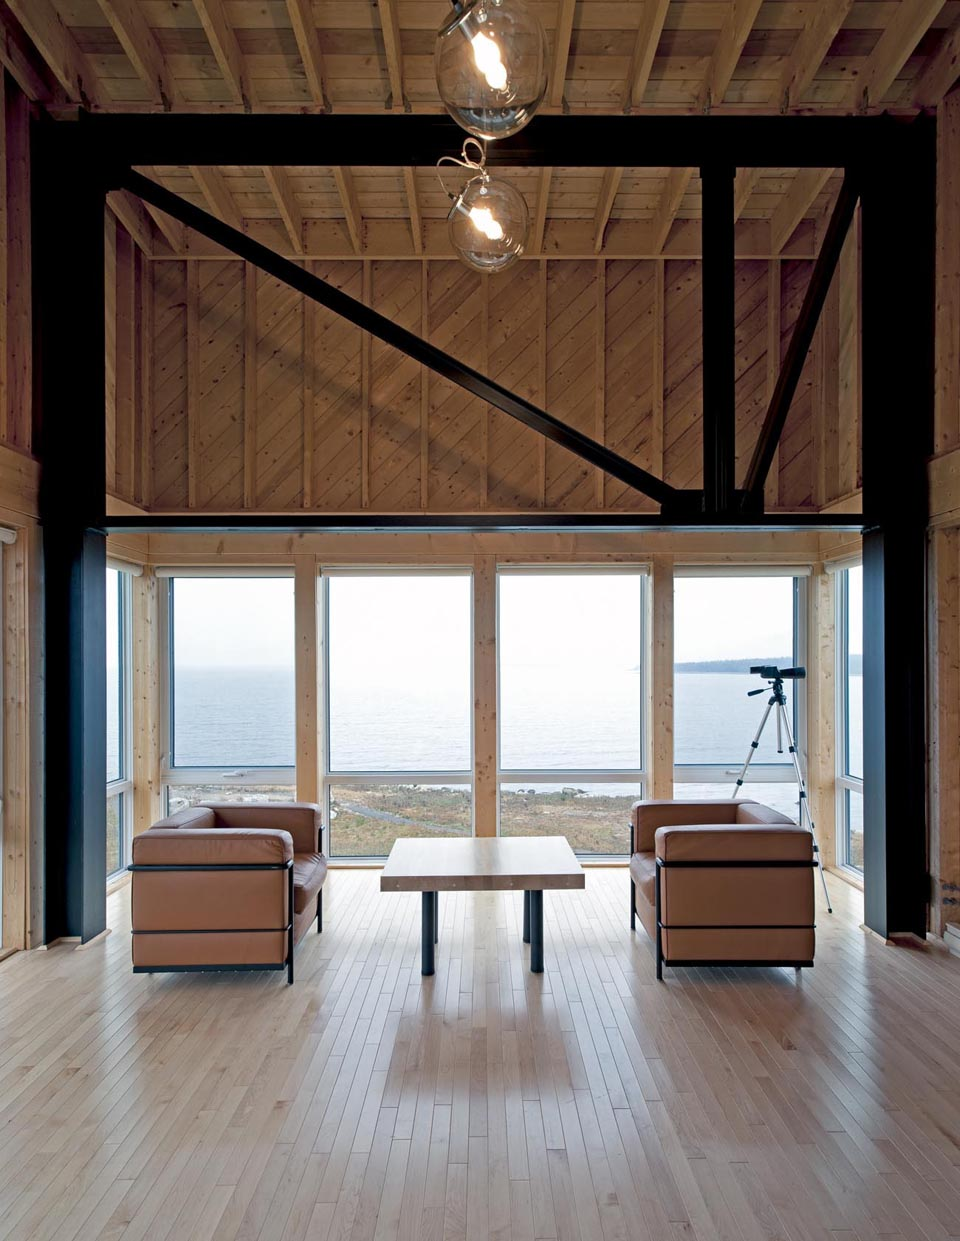 mackay-lyons-sweetapple-architects-cliff-house-2